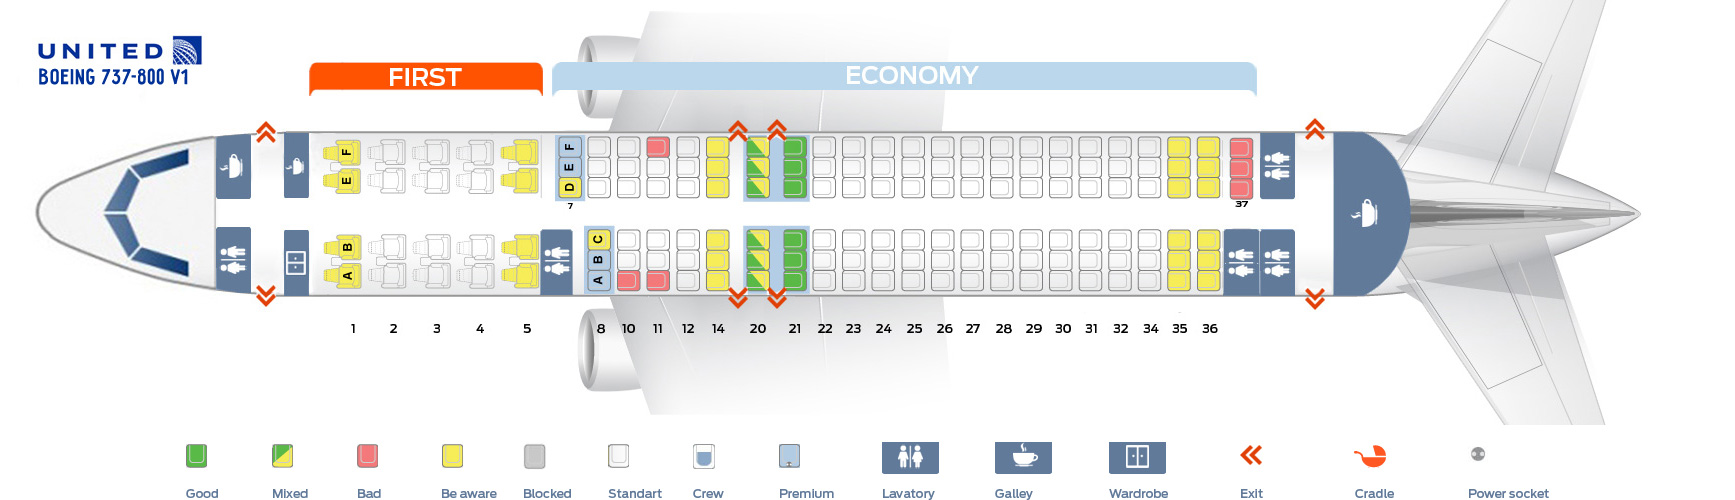 Seat_map_United_Airlines_Boeing_737_800_v1